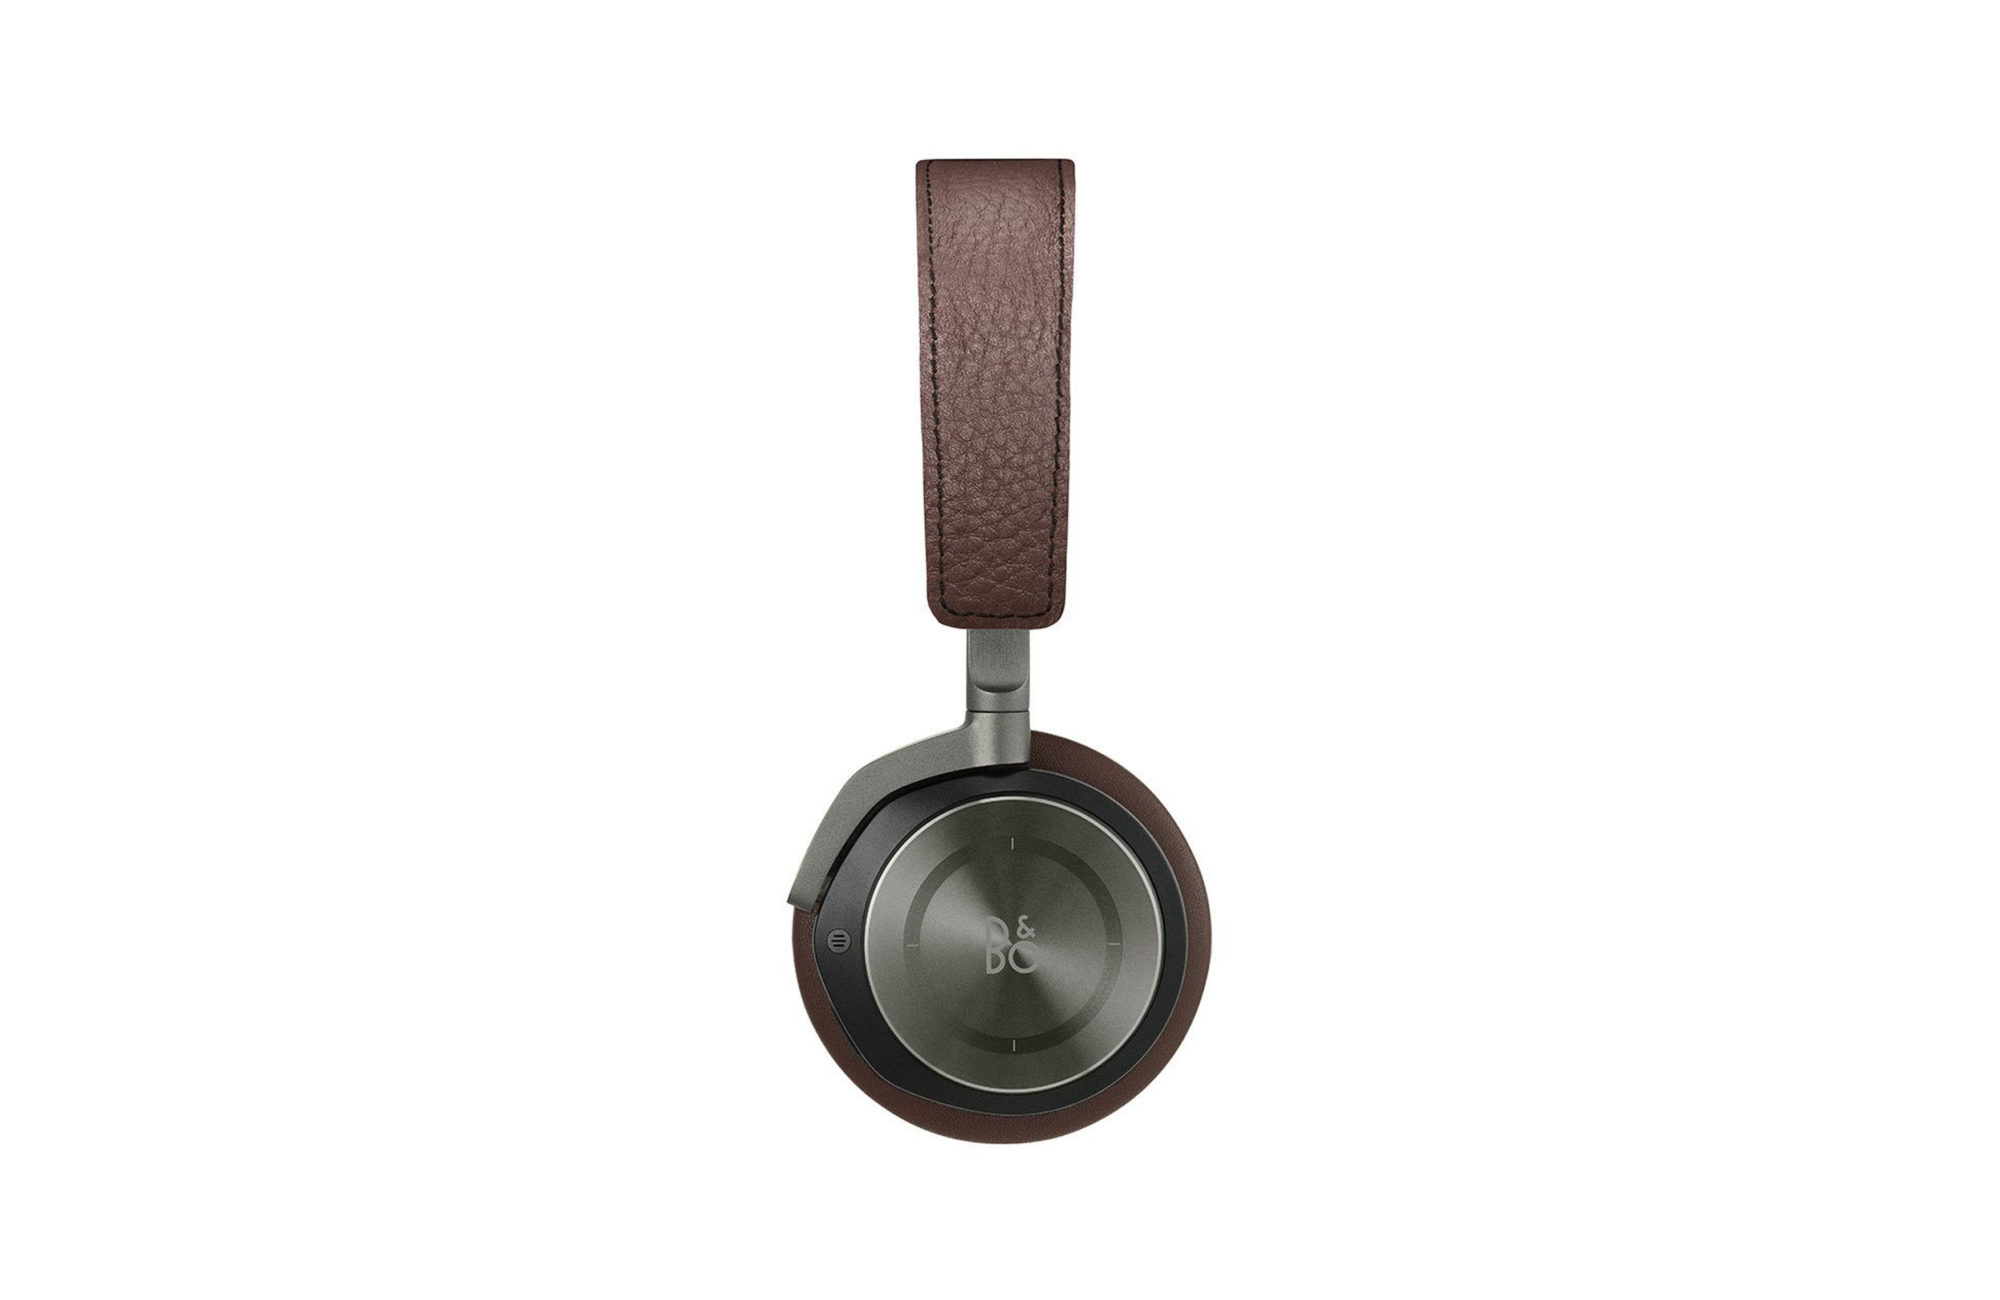 GALLERY FOR Bang & Olufsen BeoPlay H8 Headphones HIGHEST QUALITY SOUND